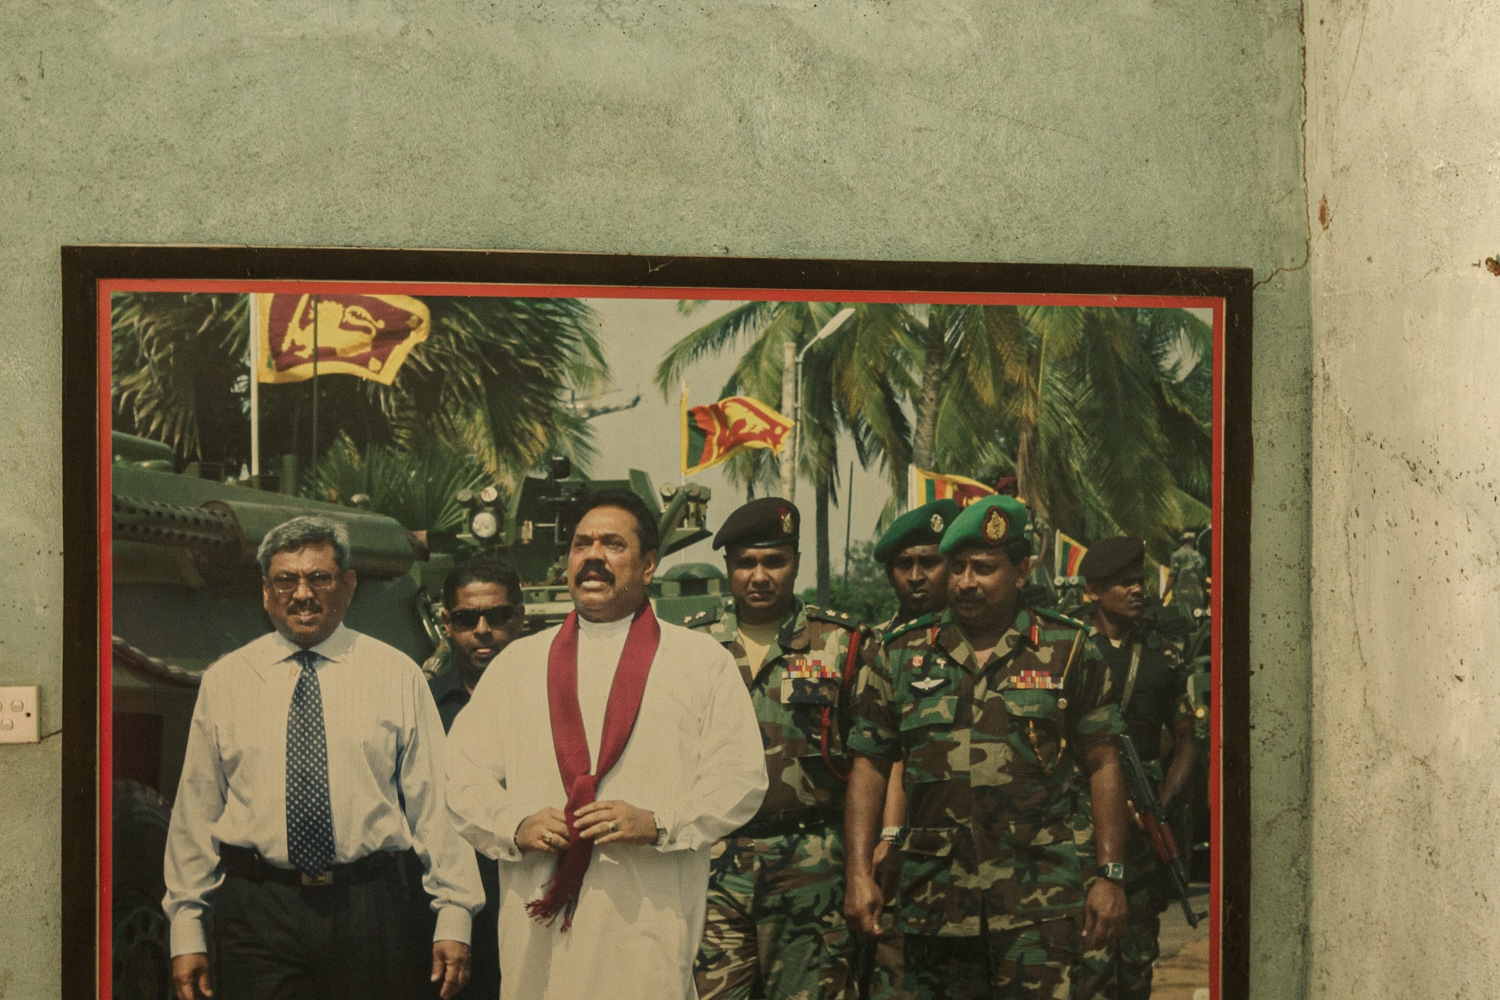 A picture of a military celebration with the ex President Mahinda Rajapaksa (centre) and his brother Gotabhaya Rajapksa (right) who was Minister of Defence during the final phase of war in 2009 that killed tens of thousands of Tamil civilians. (September, 2015)